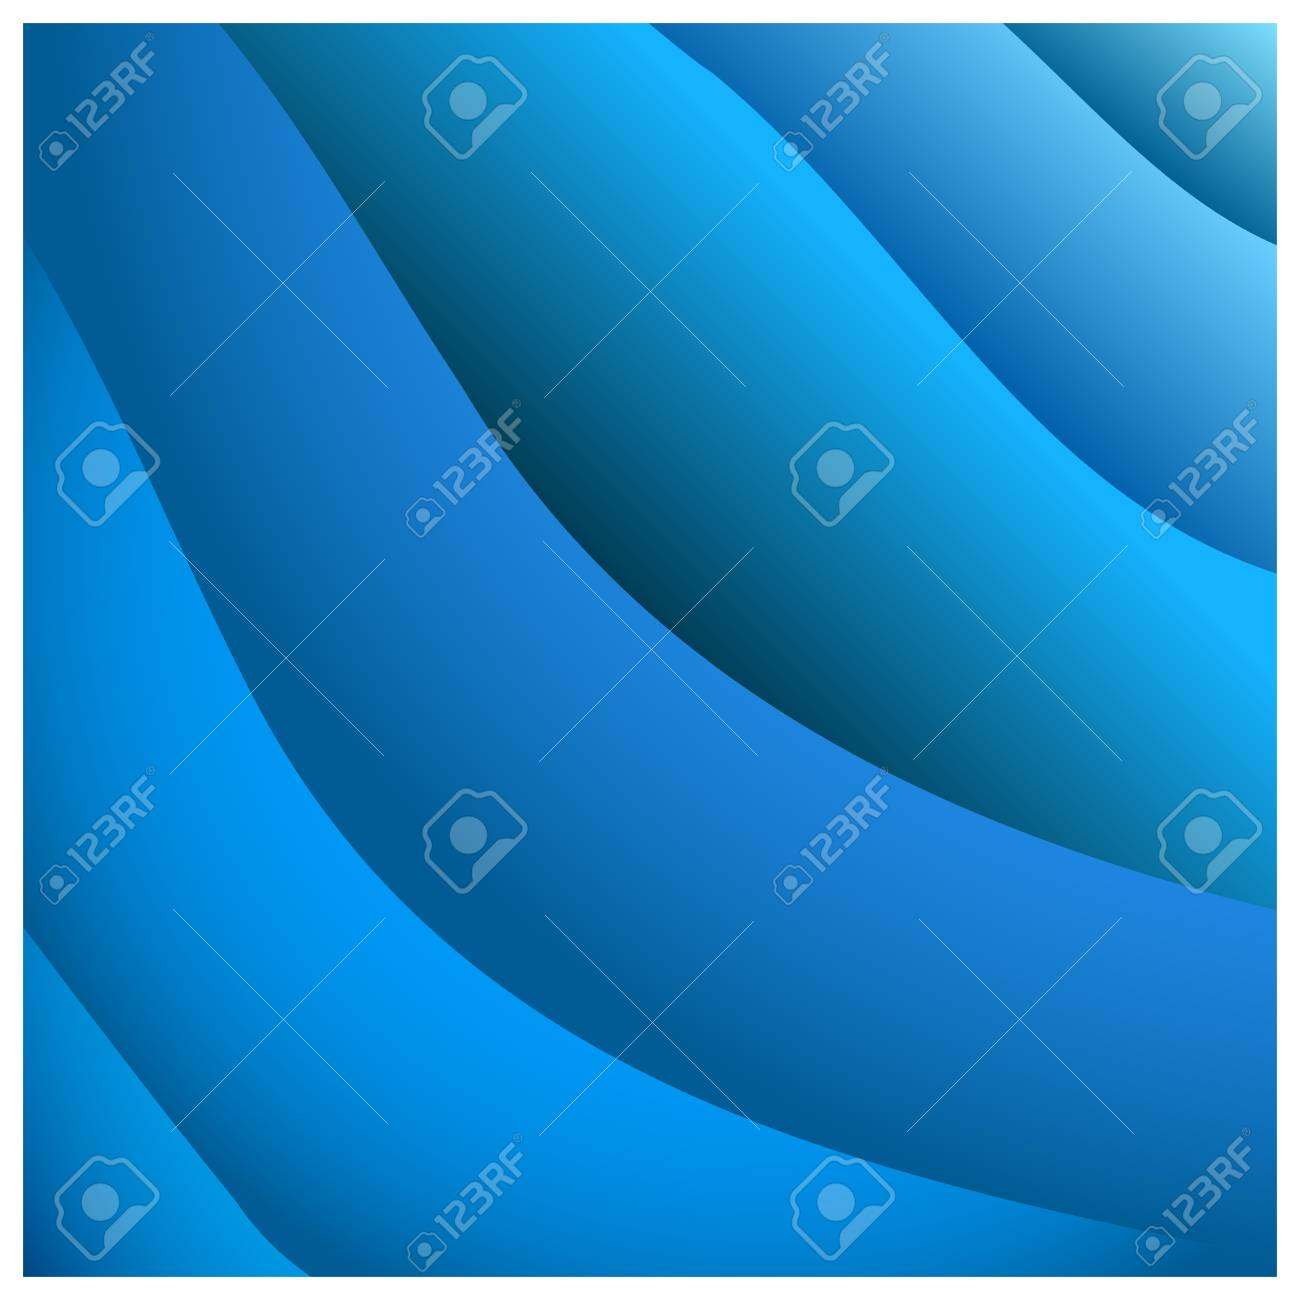 Abstract light vector background - 58014777